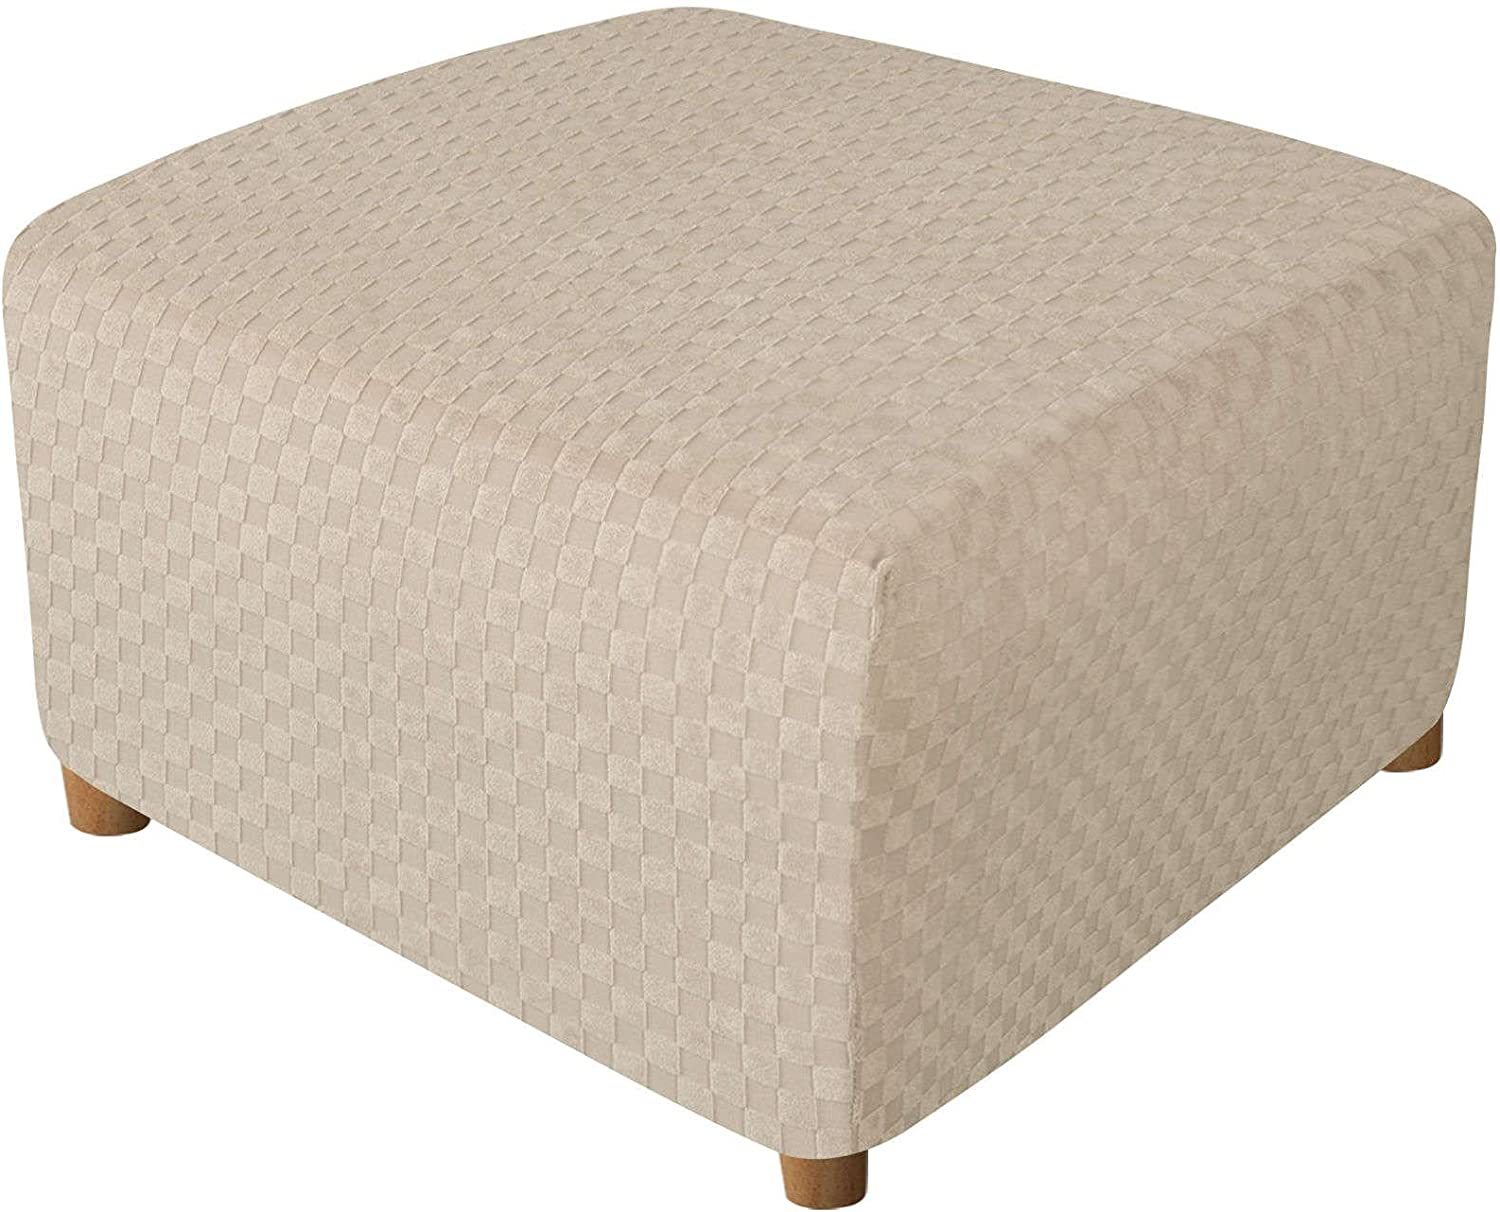 Easy-to-use Square Ottoman Max 45% OFF Slipcovers Detachable Footstool Protector Jacquar